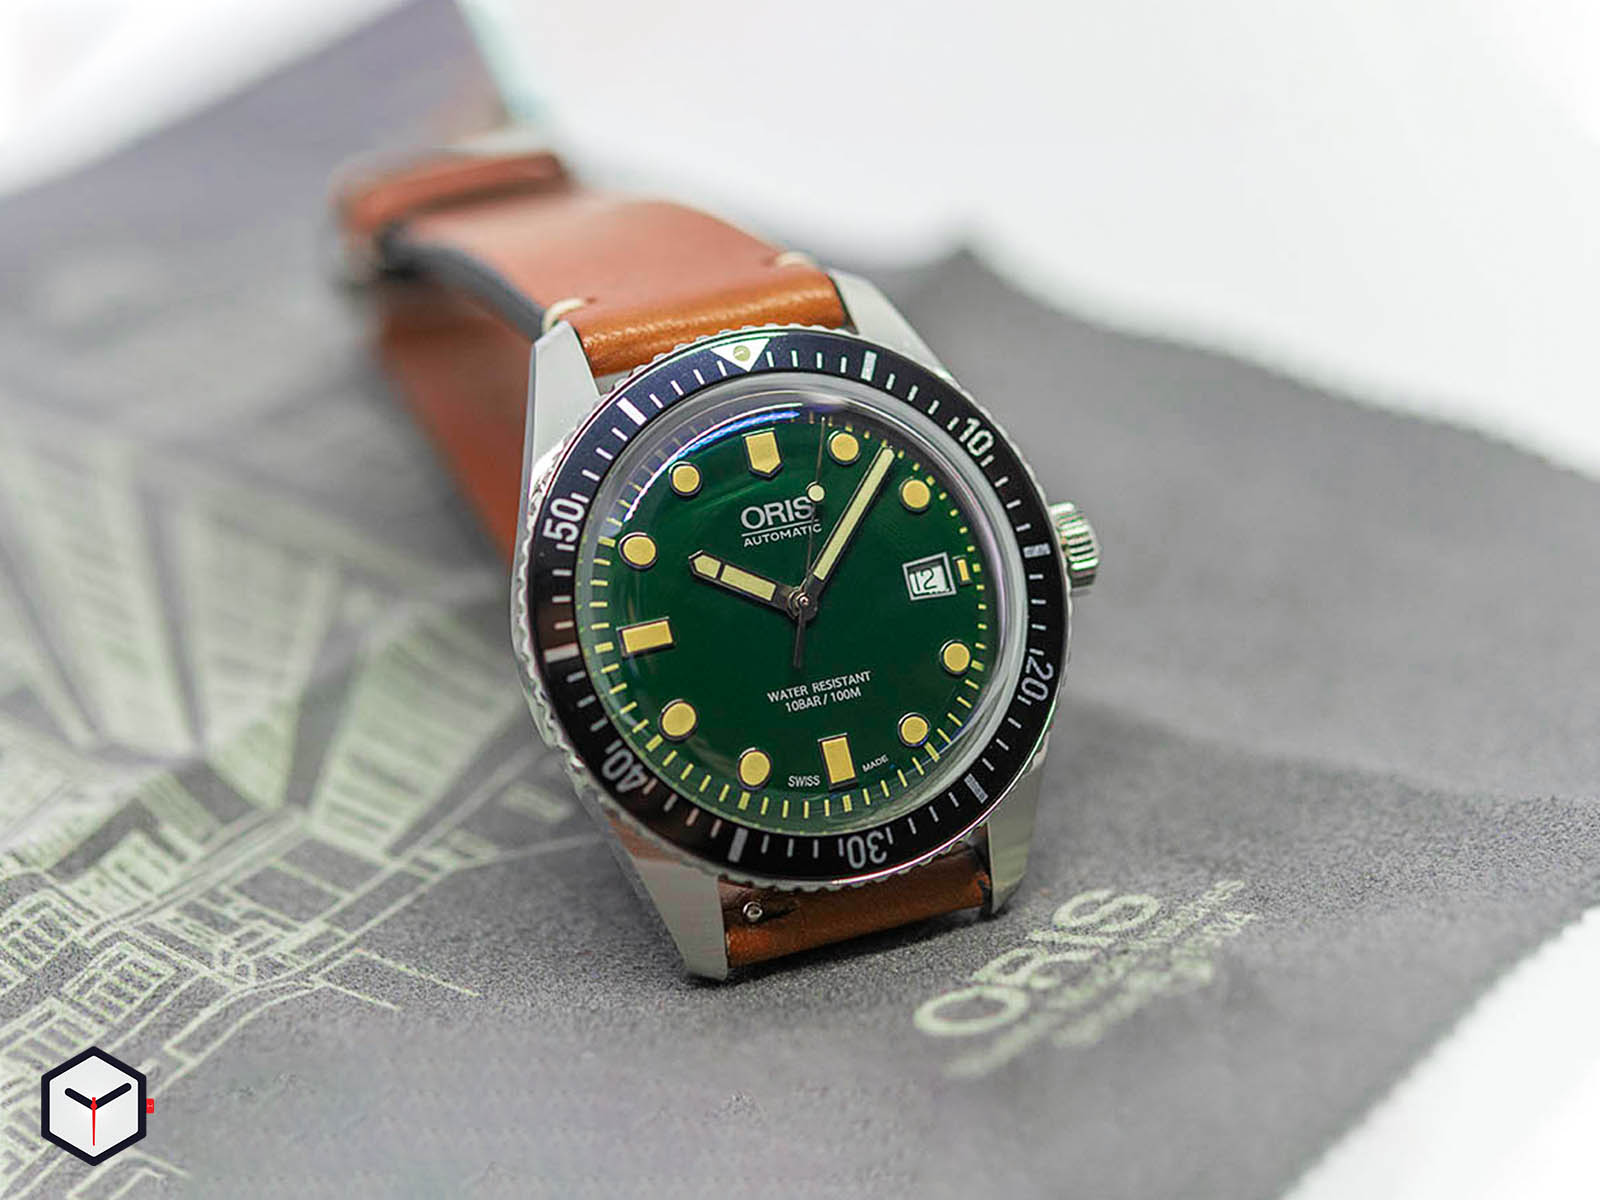 01-733-7720-4057-07-5-21-02-oris-divers-sixty-five-green-dial-9.jpg